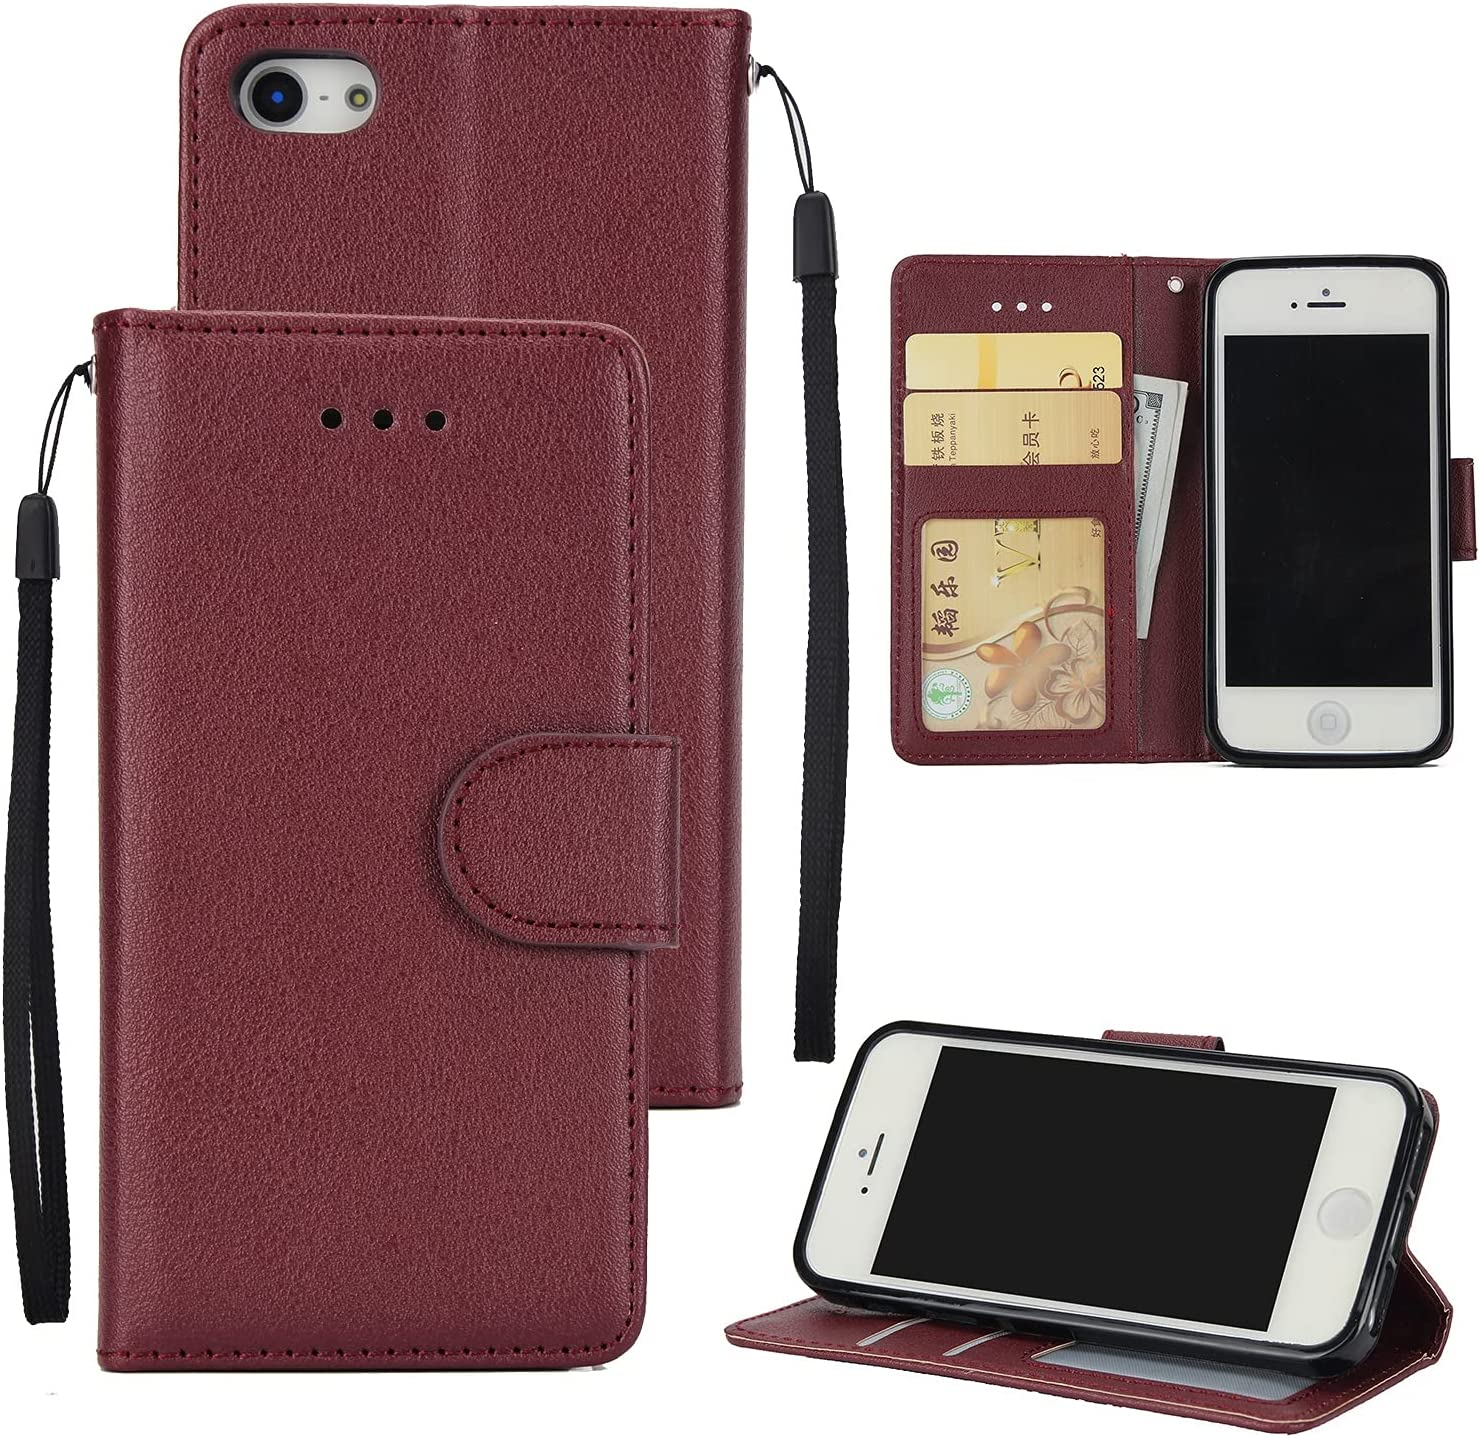 AHUOZ Phone Flip Case Cover Wallet Case for iPhone 5S/5SE/5, Premium PU Leather Wallet Case [Wrist Strap] Flip Folio with ID&Credit Card Pockets (Color : Wine red)